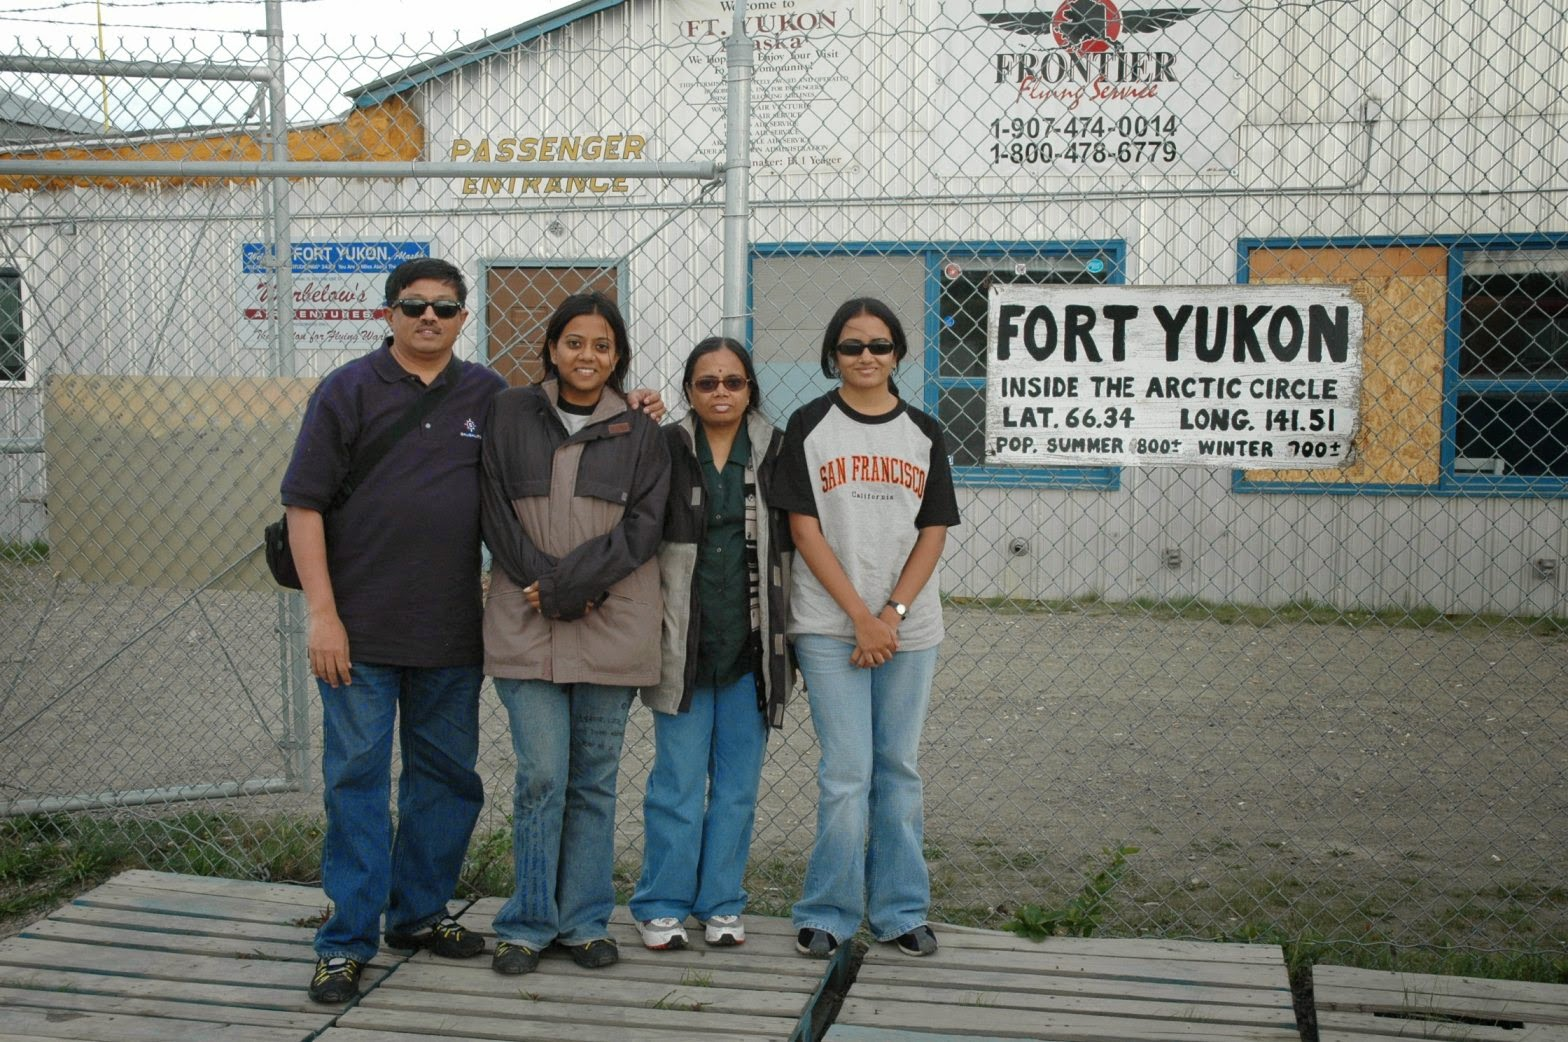 fort yukon singles & personals Fort frances singles: usa singles quebec singles saskatchewan singles yukon singles about fort frances personals | home page : more pictures.